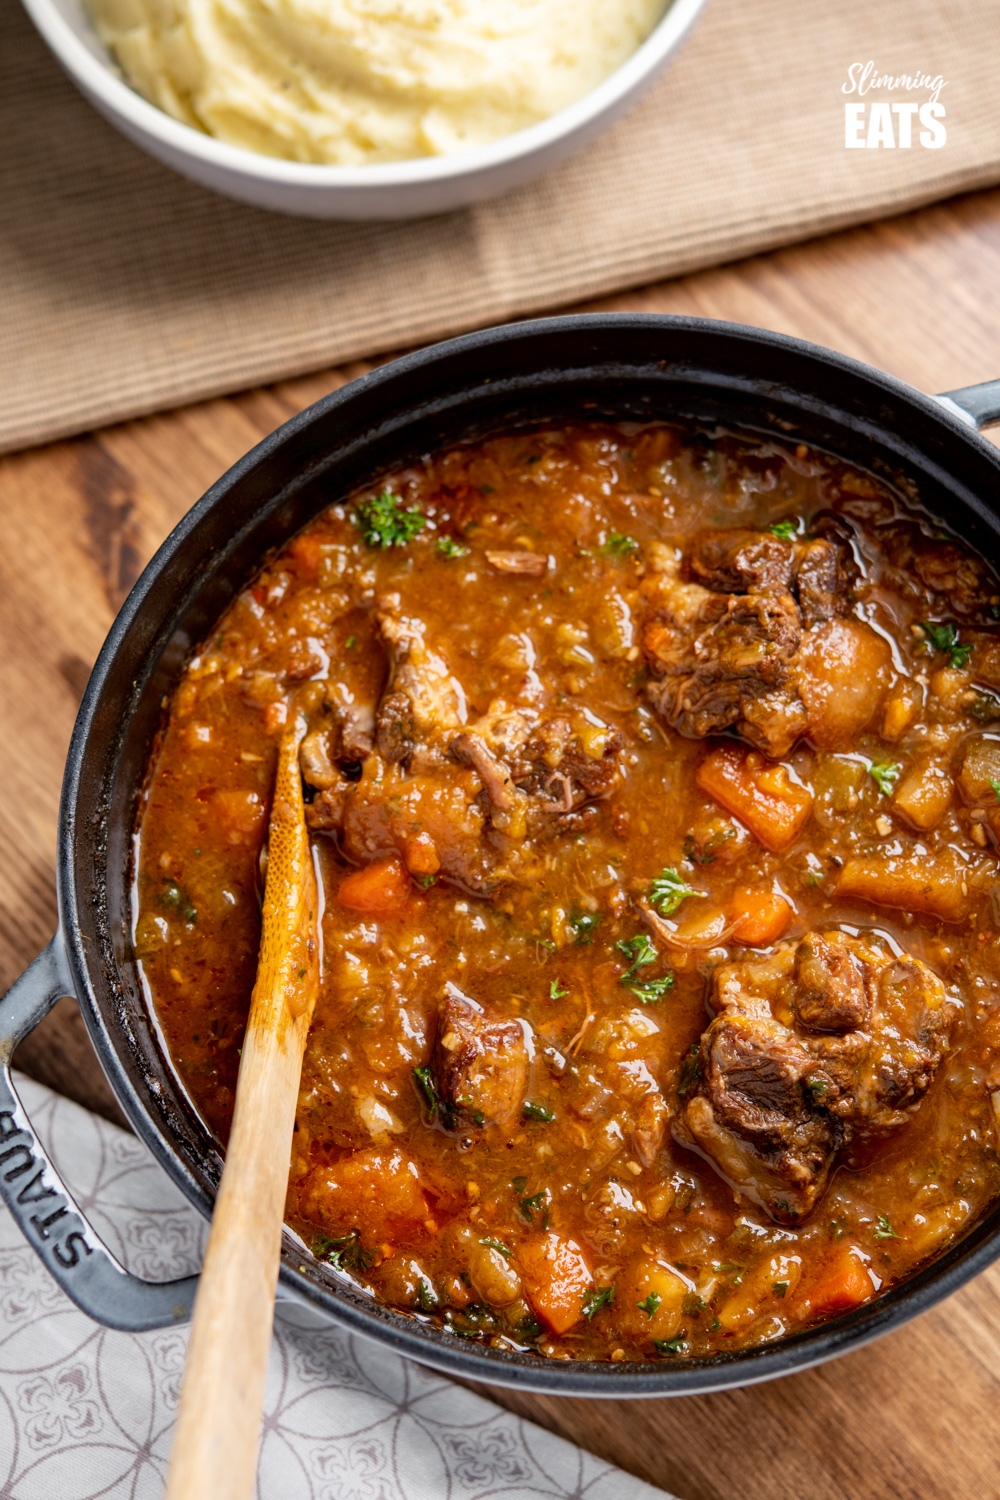 Hearty Oxtail Stew in a grey staub cast iron pot with wooden spoon